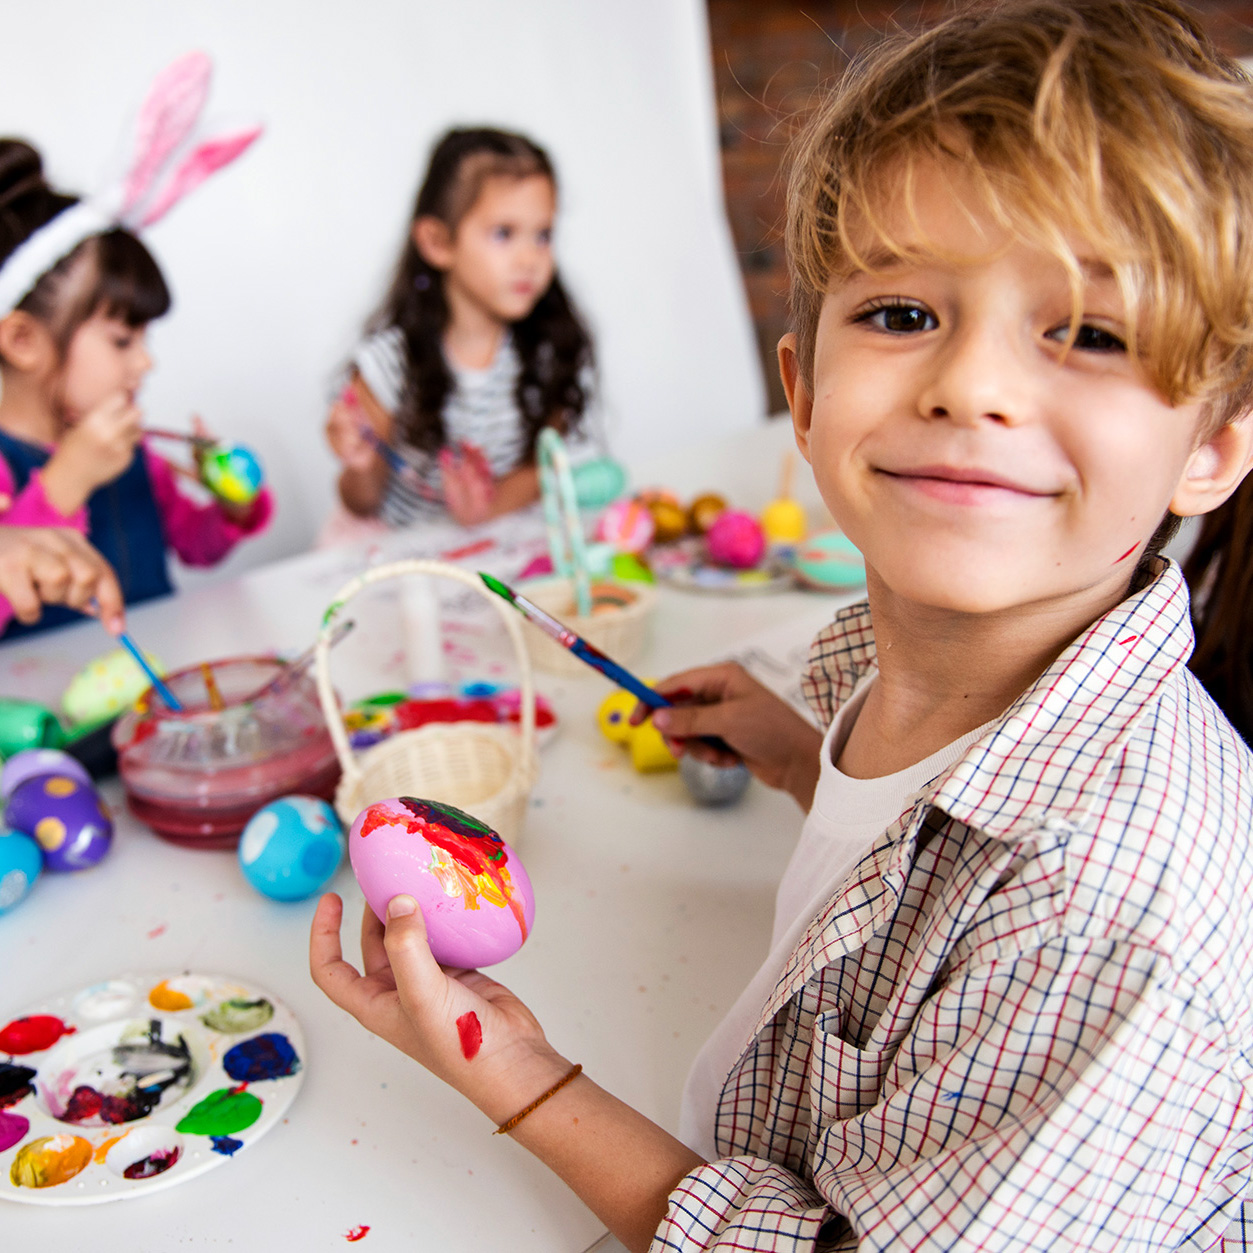 yardley-arts-childrens-courses-northamptonshire-sq.jpg